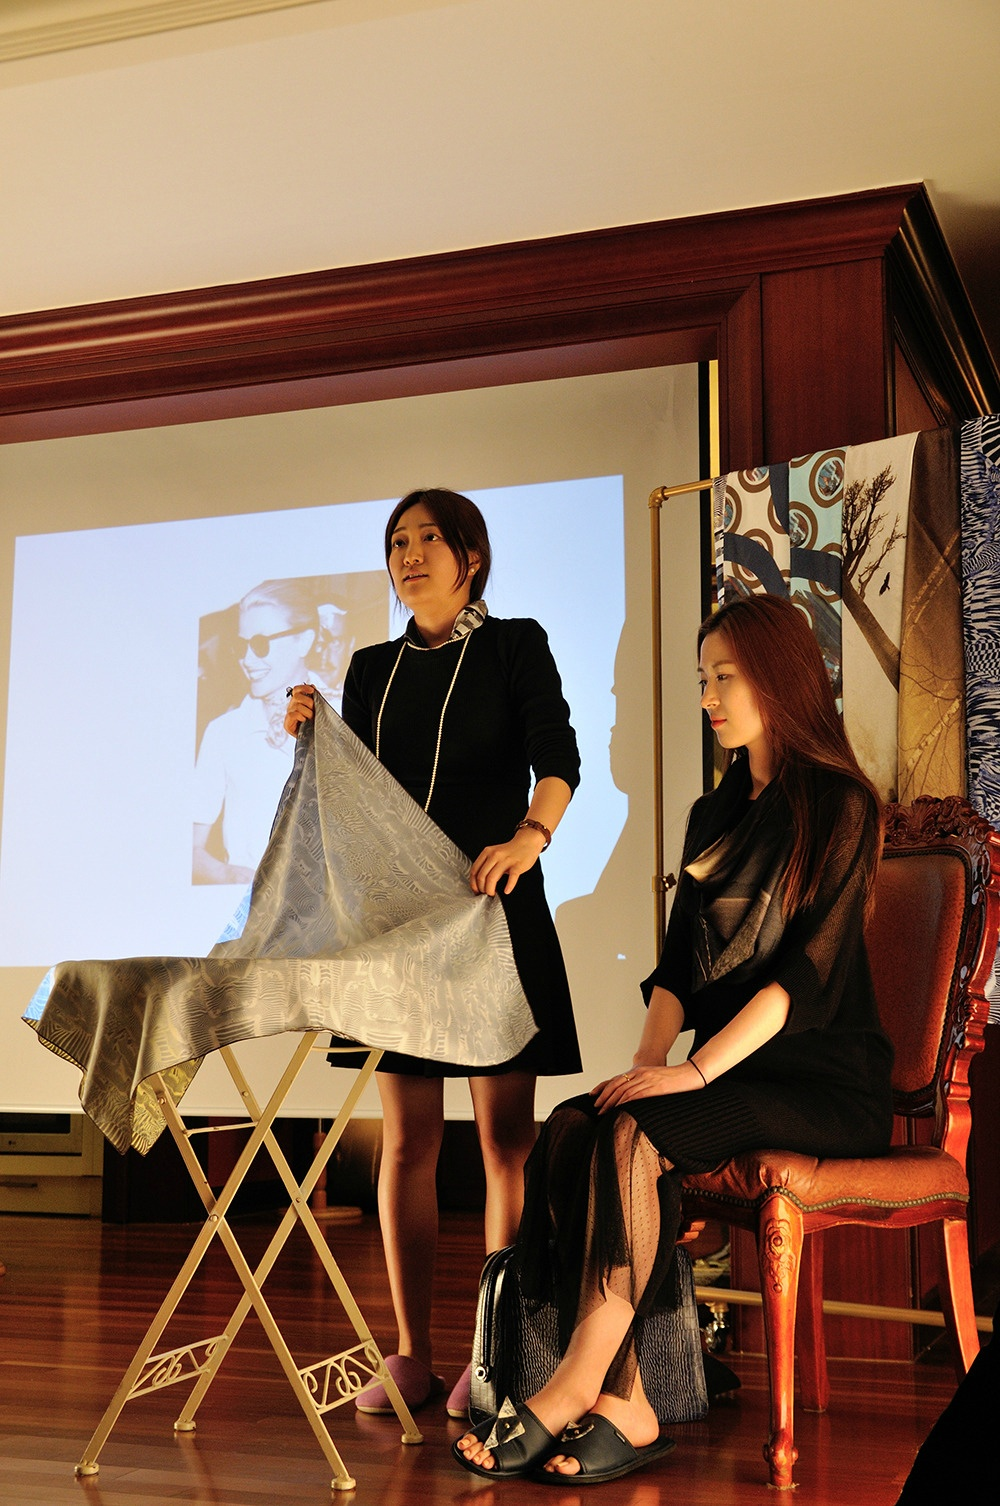 THE SCARVERS ON THE ROAD 이홍석 - Scarf Show in Salon de Banana